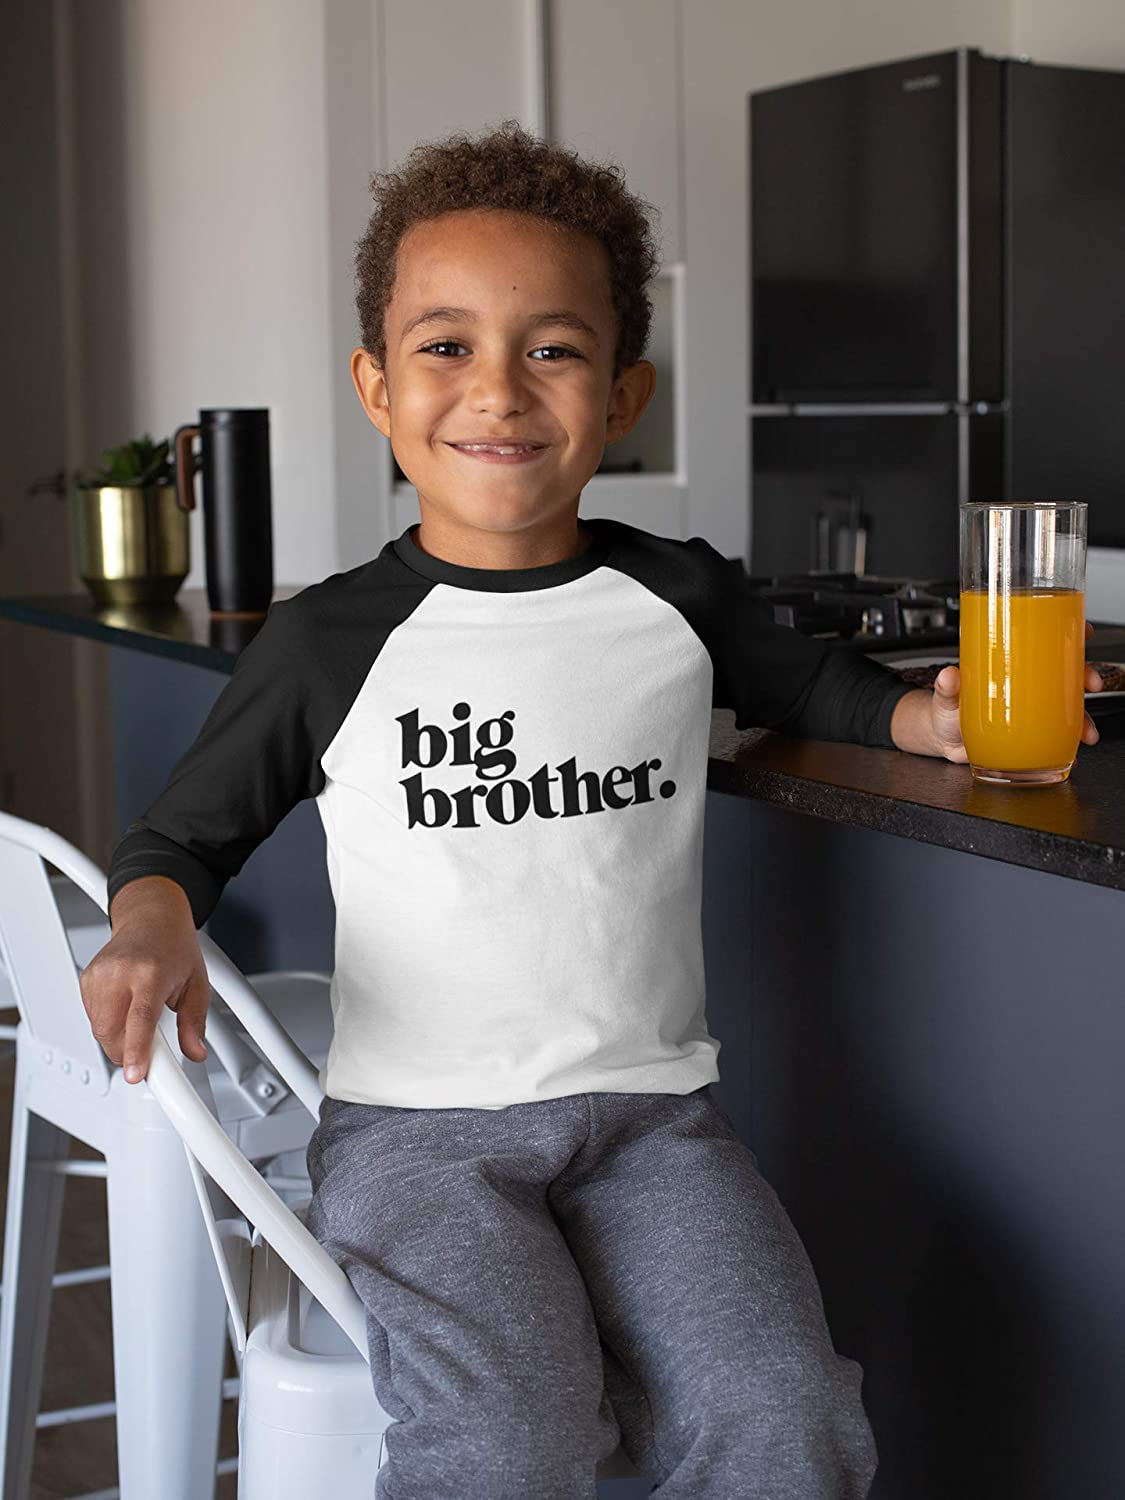 Bold Promoted to Big Brother Sibling Reveal Shirt for Boys Sibling Outfit